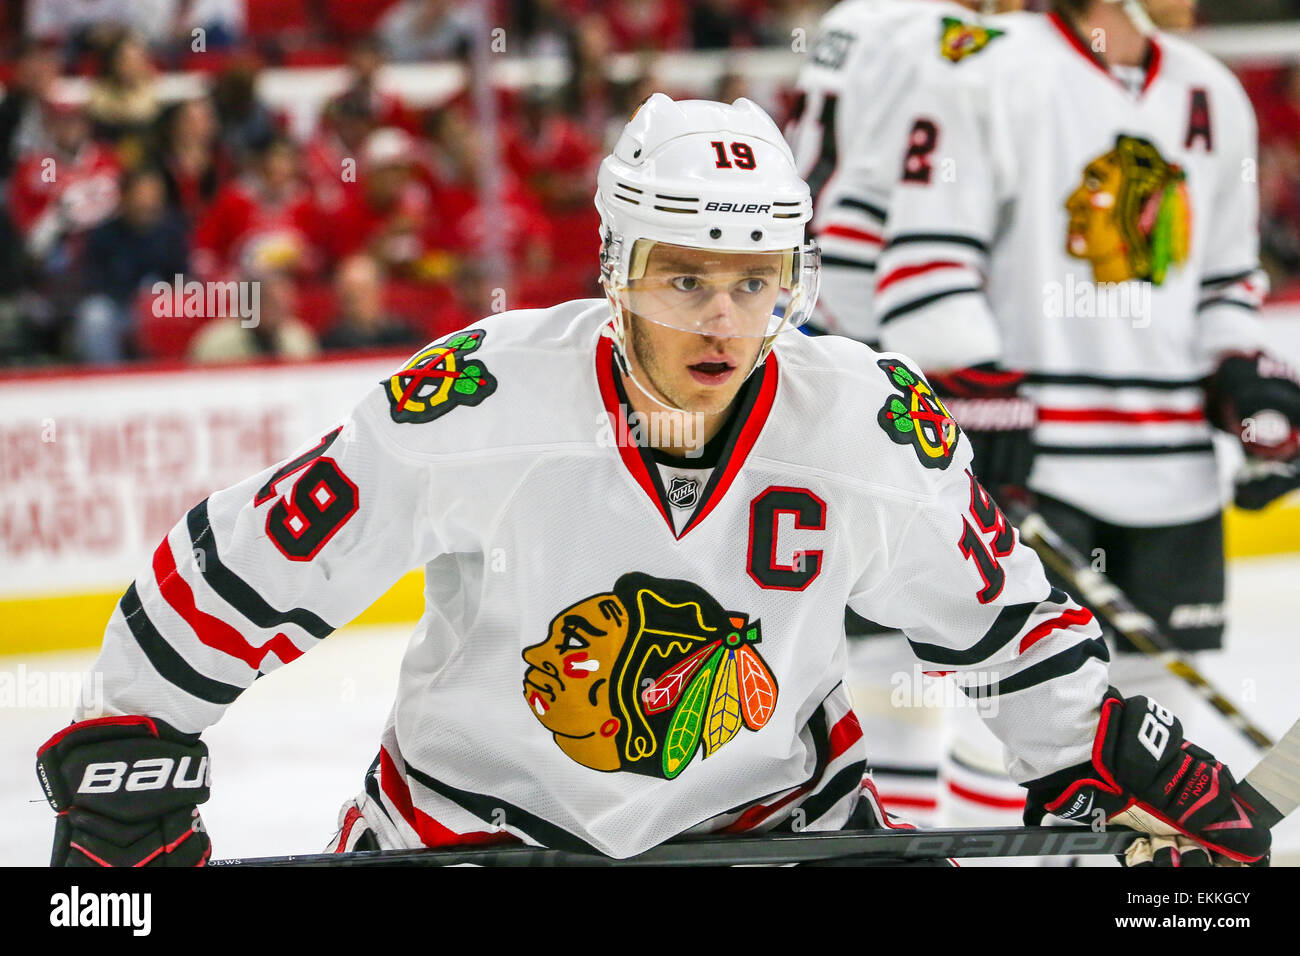 chicago blackhawks center jonathan toews 19 during the nhl game